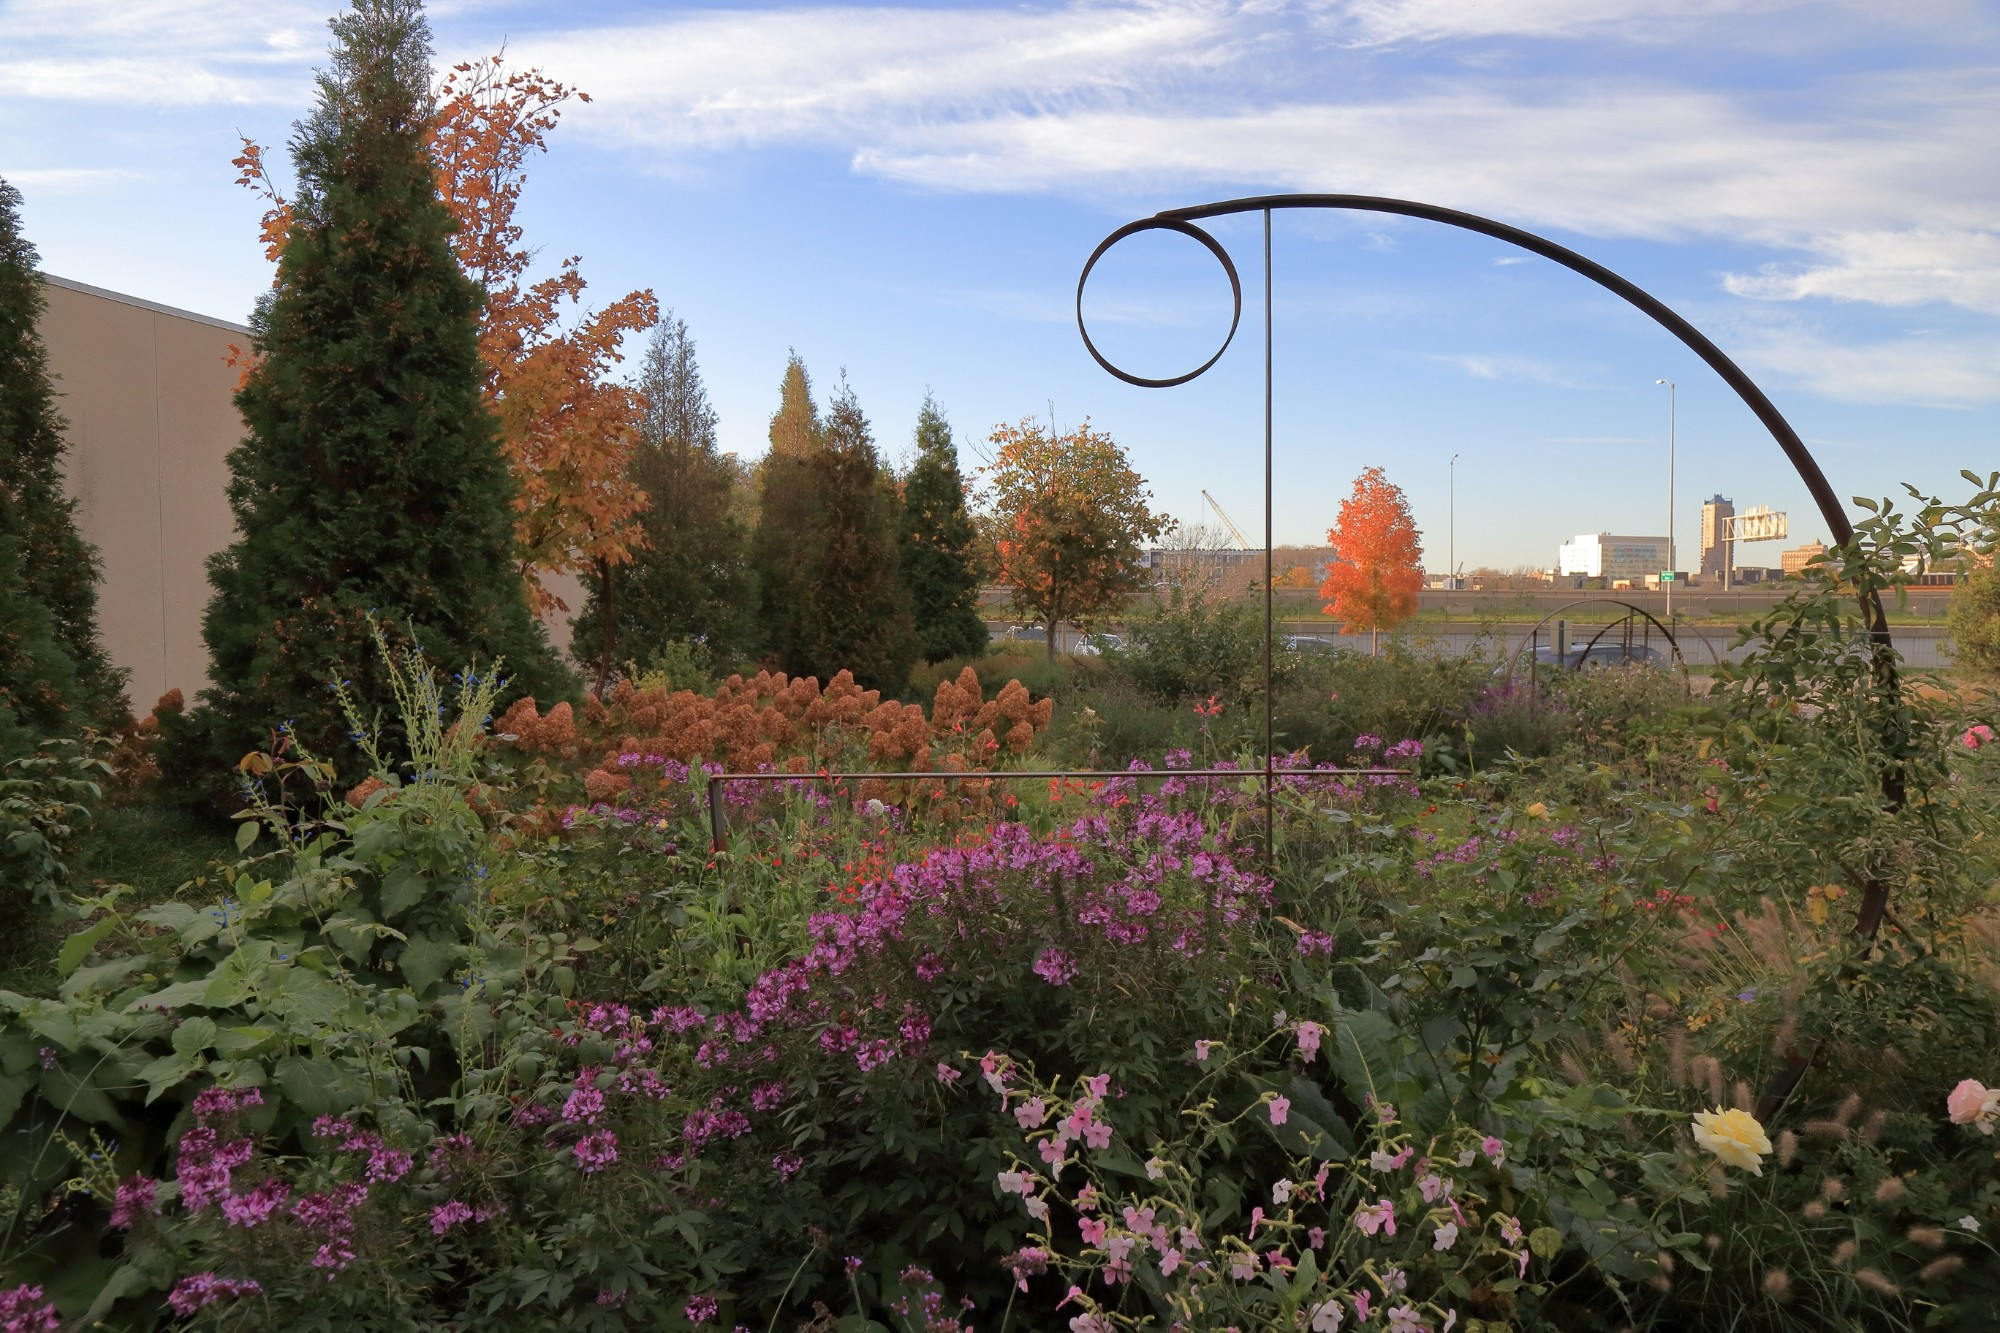 The Wells Fargo Rose Garden on October 26. Photo by Kelly Norris.